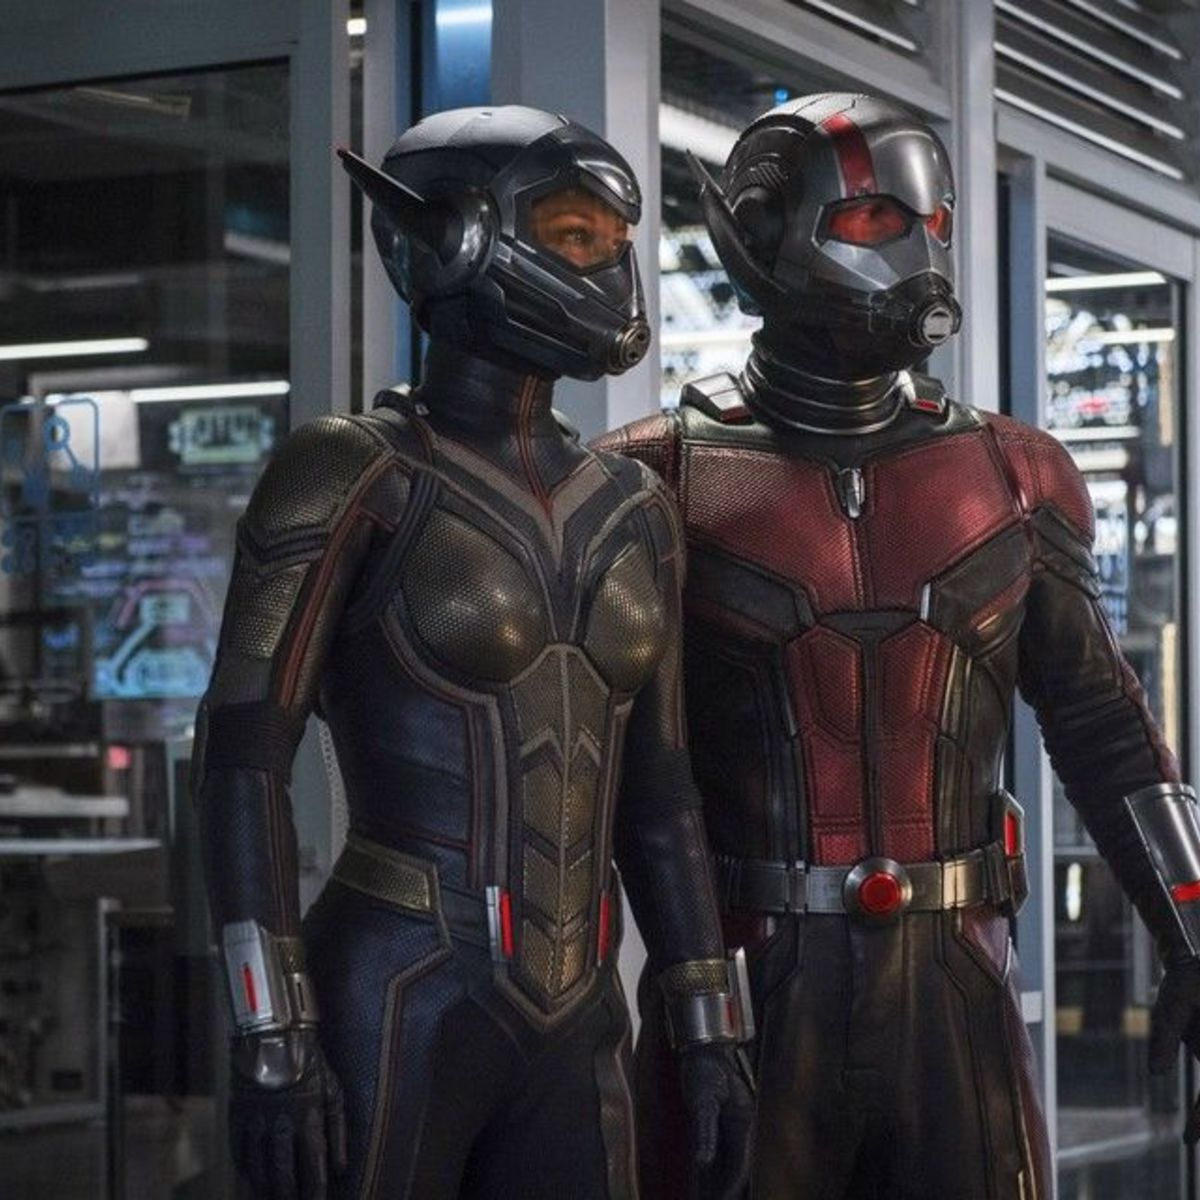 Ant Man and the Wasp, Scott, Hope